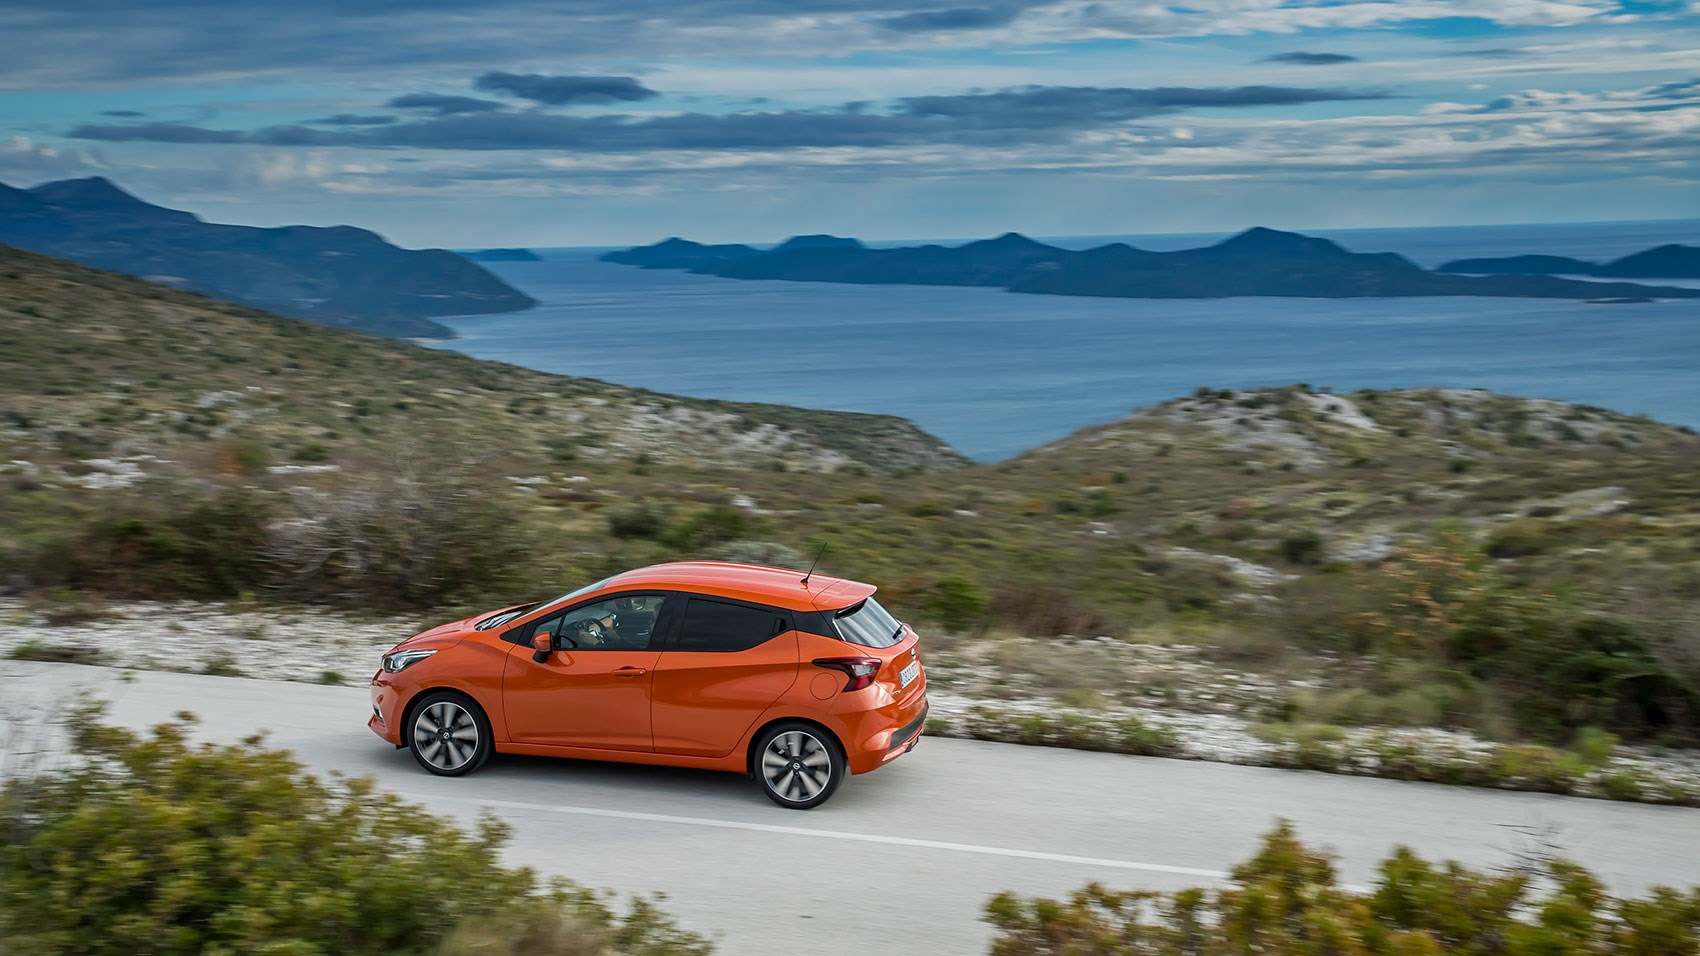 Nissan Micra review: on-trend blacked-out windows, floating roofline and hidden rear door handles